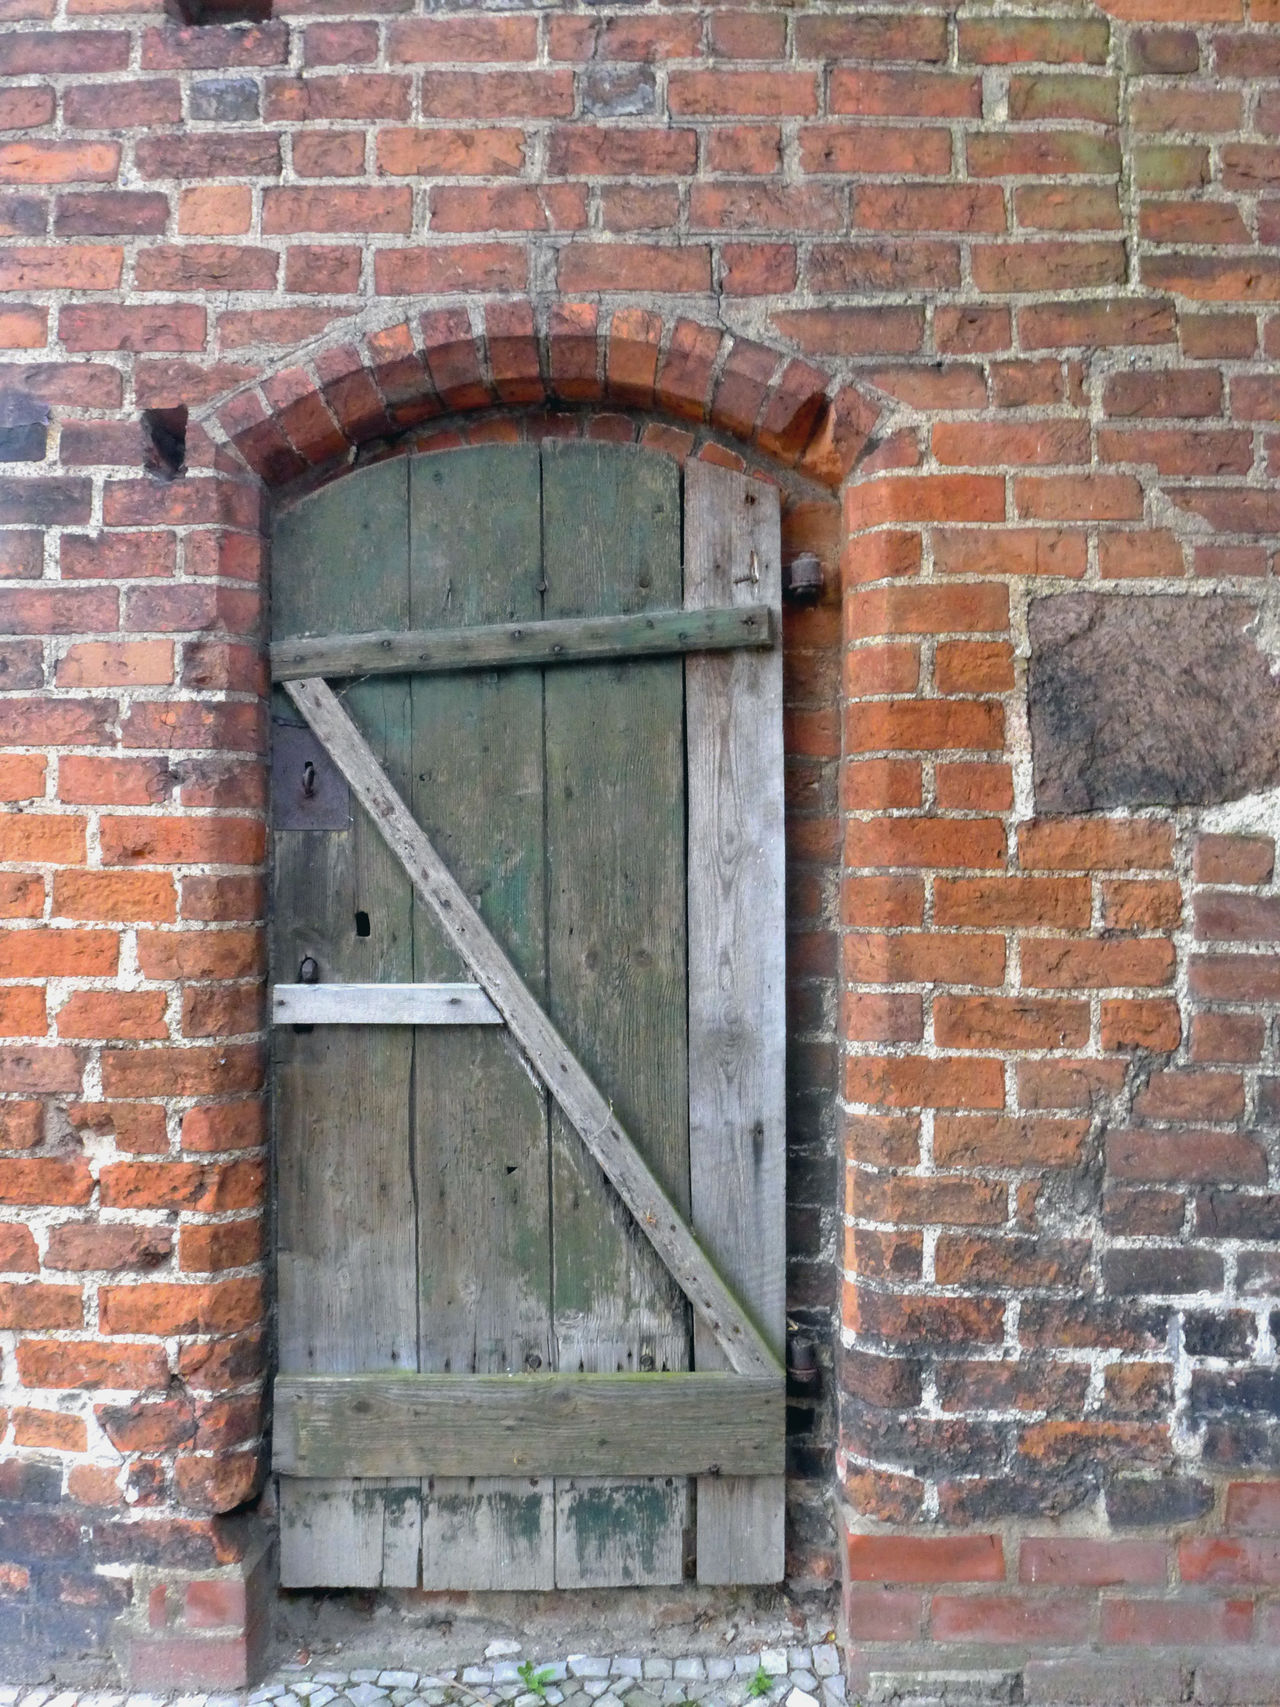 Architecture Brick Wall Building Exterior Built Structure Door Elbe Elberadweg Old Buildings Old House Tangermünde Wood - Material